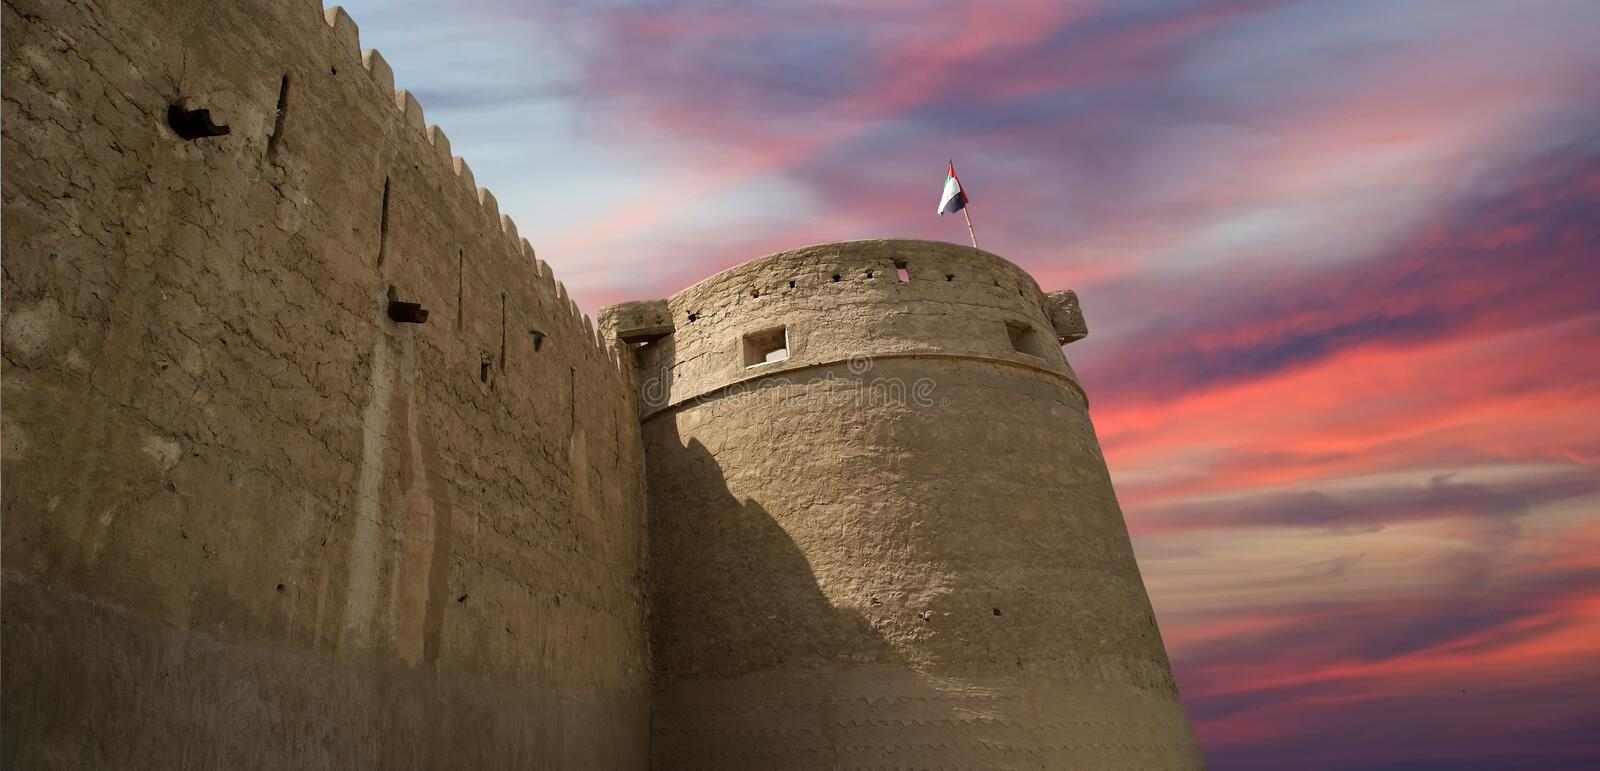 Old Fort. Dubai, United Arab Emirates (UAE). This castle/fort is the oldest building still standing in Dubai (United Arab Emerites) which is now part of the royalty free stock photo